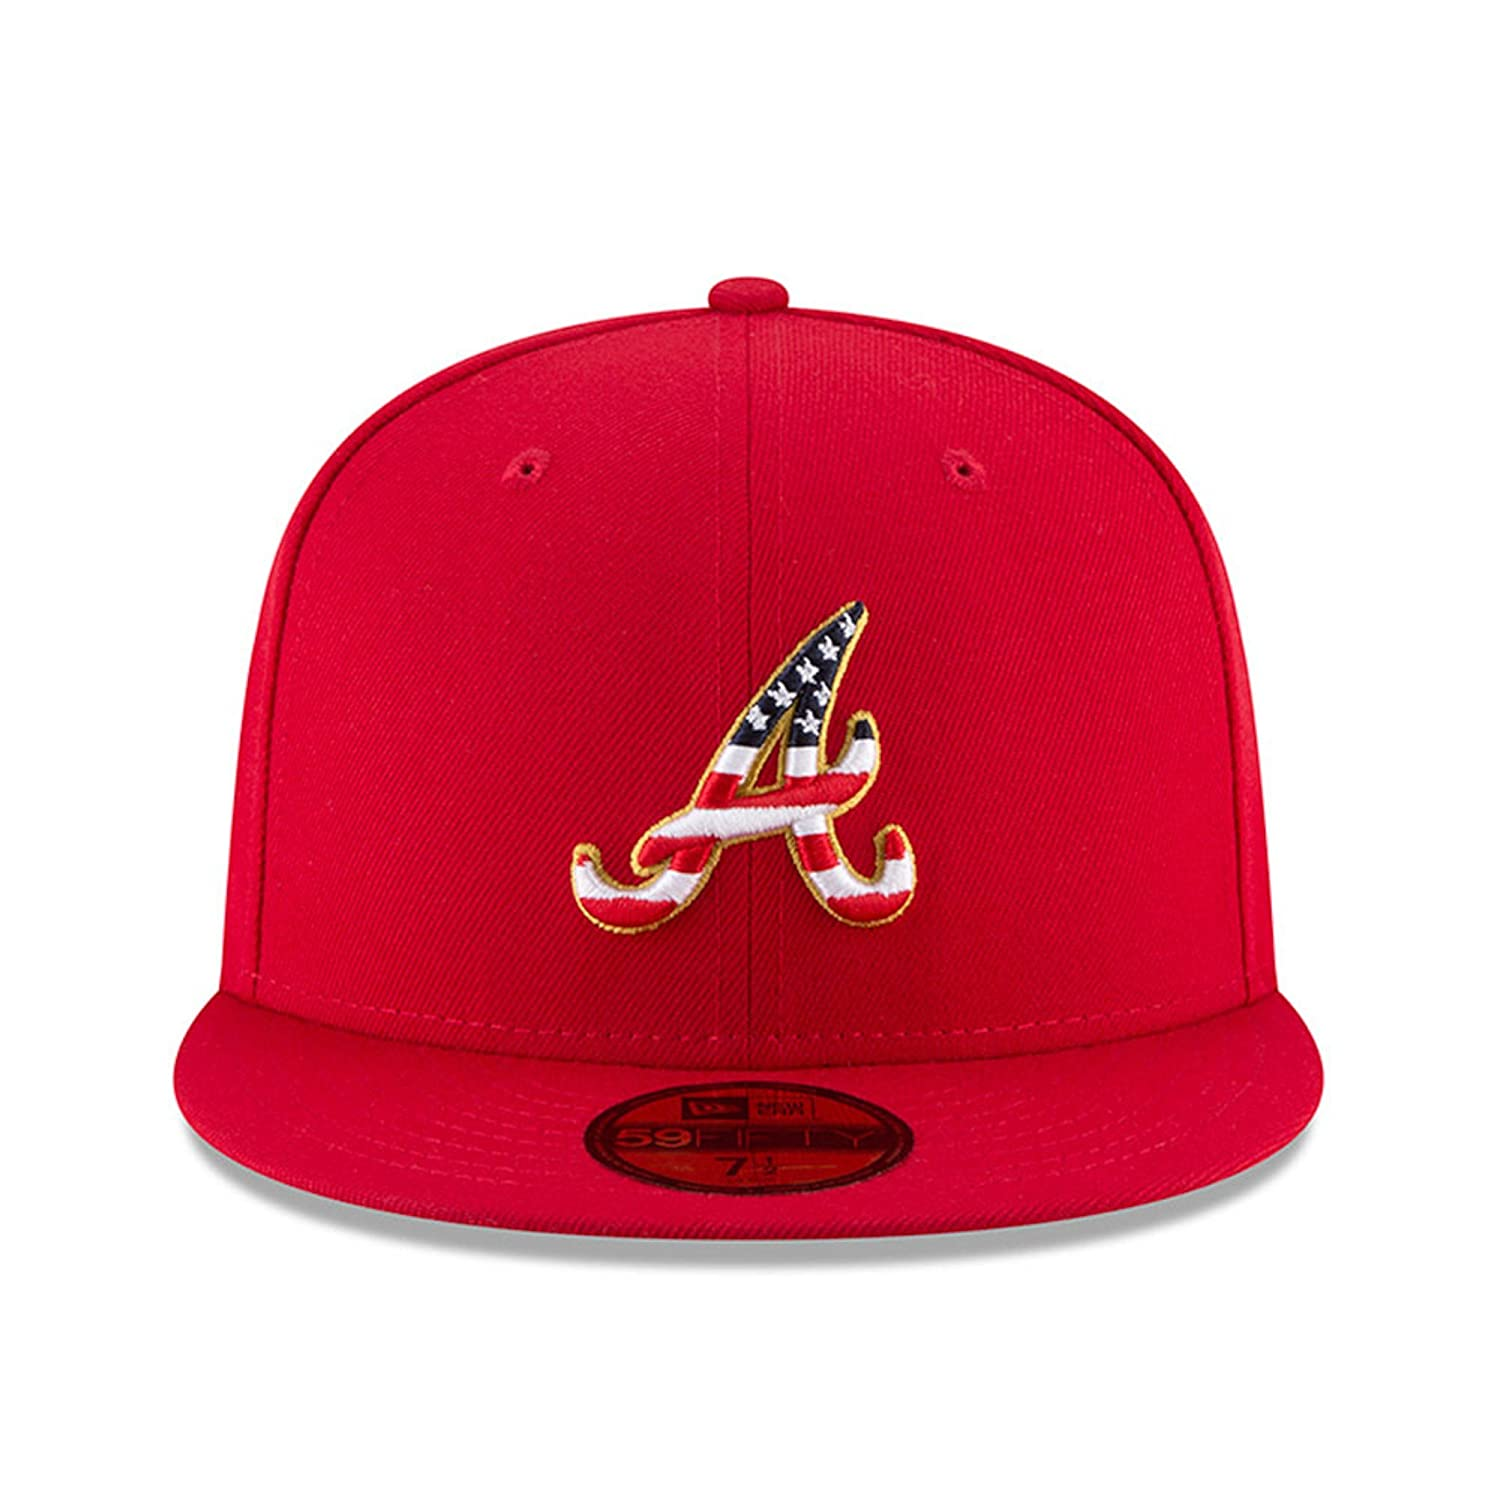 New Era Atlanta Braves 2018 Stars   Stripes 4th of July 59Fifty Hat at  Amazon Men s Clothing store  b2c01e0b68e